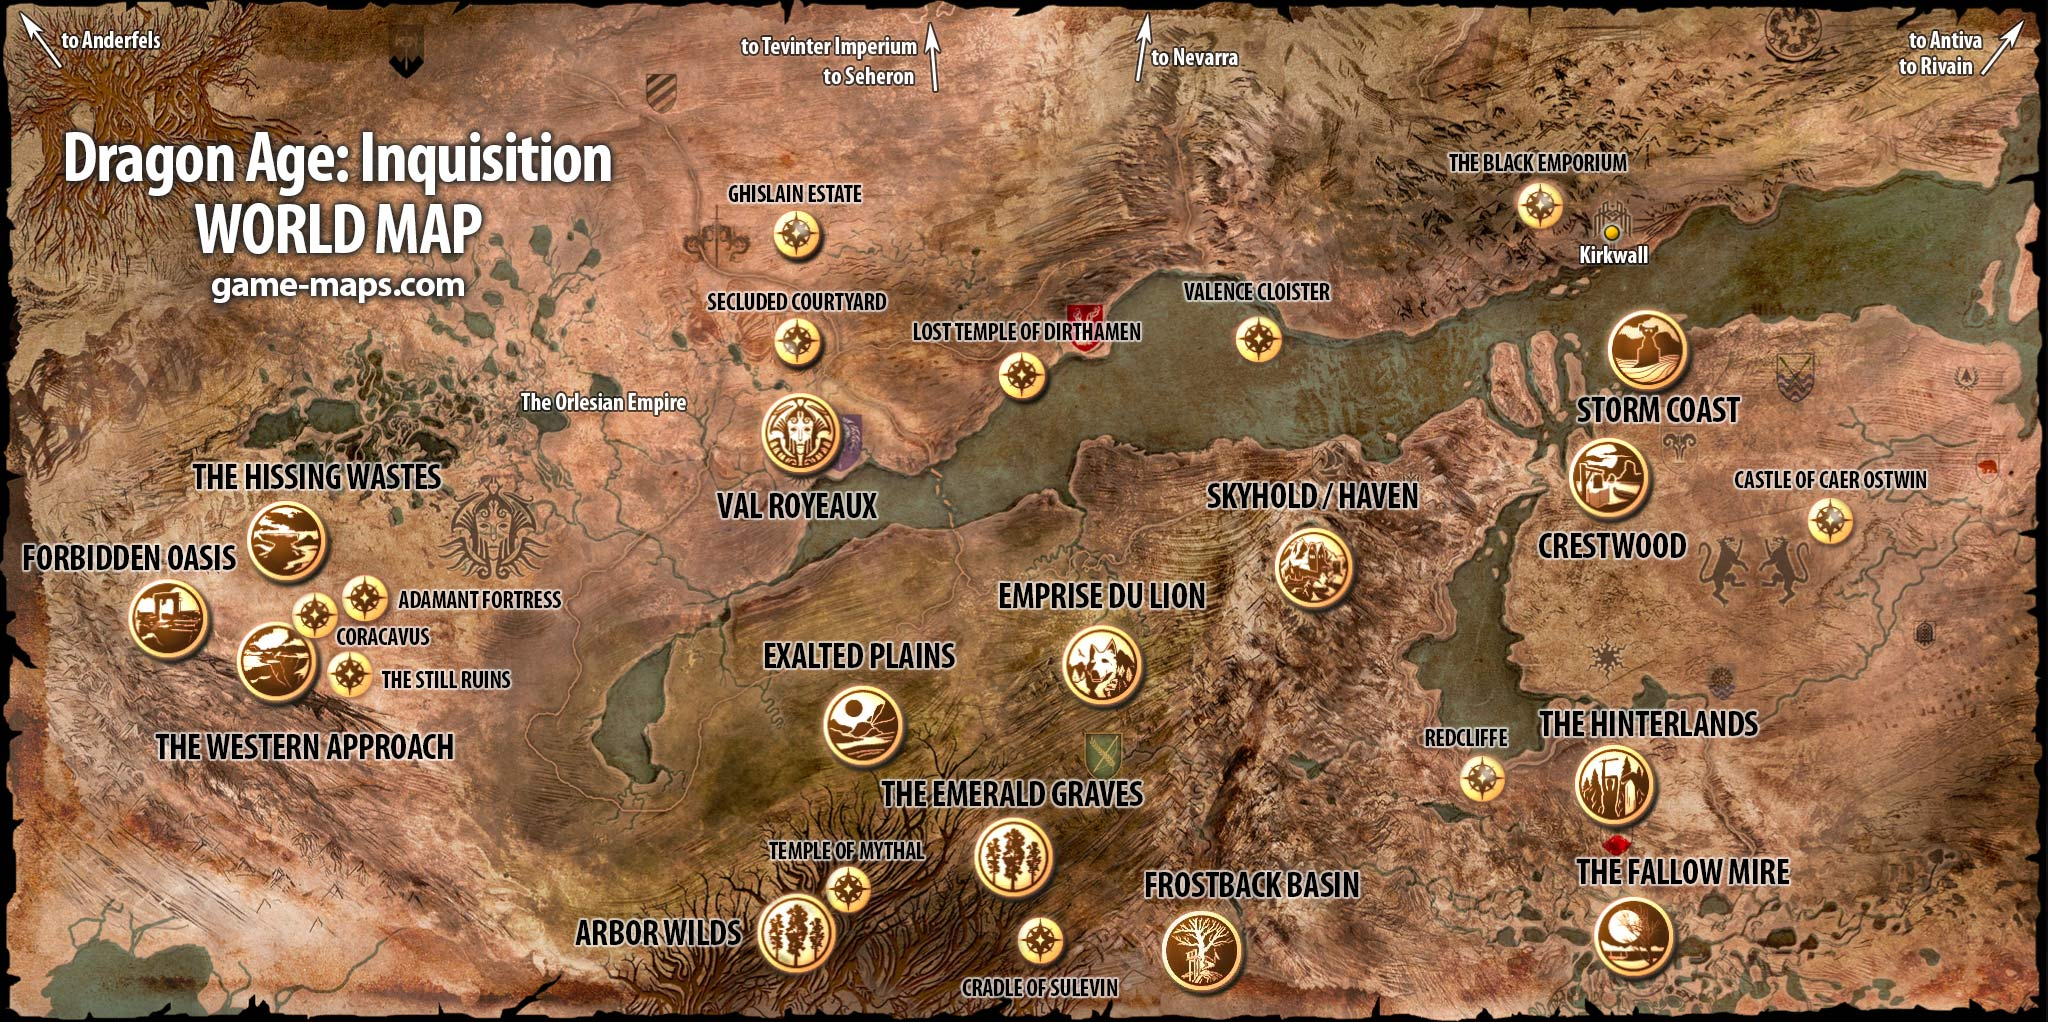 Dragon Age Map Dragon Age: Inquisition Walkthrough, Game Guide & Maps. | game